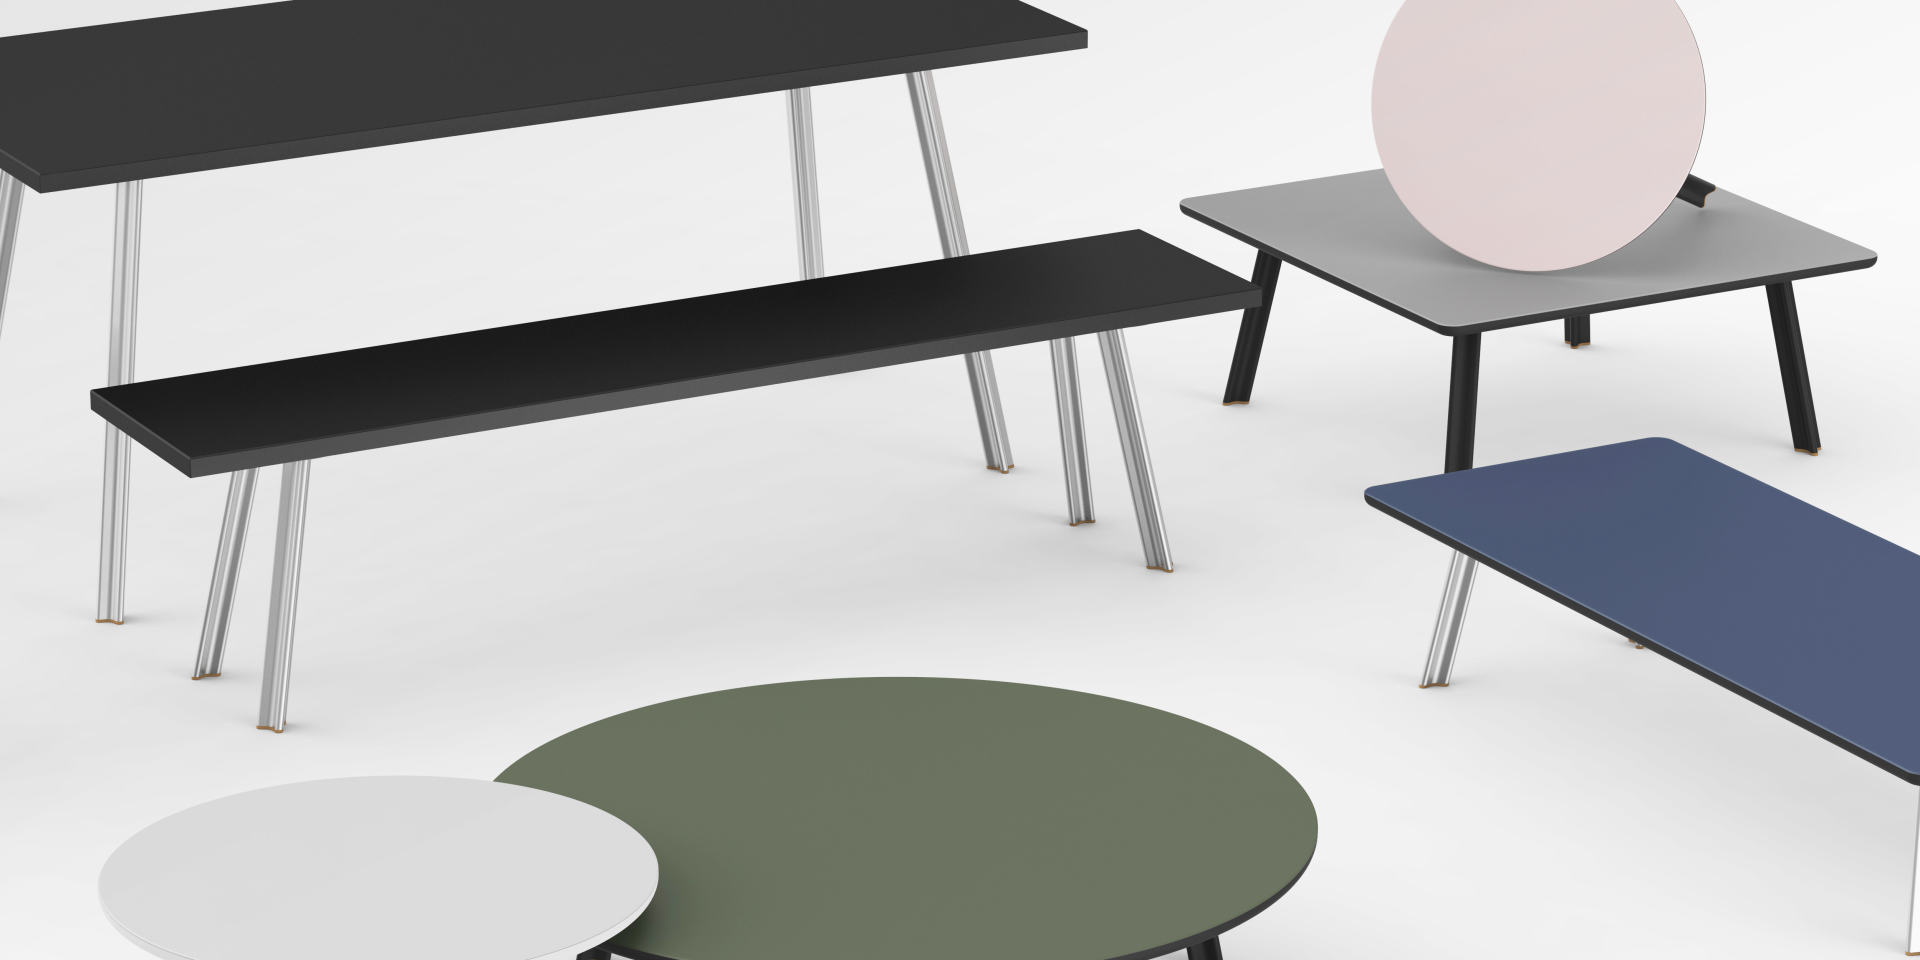 Home, Tabletops, Tables & Trestles, Shelving System, Seating Systems, Office, Accessories